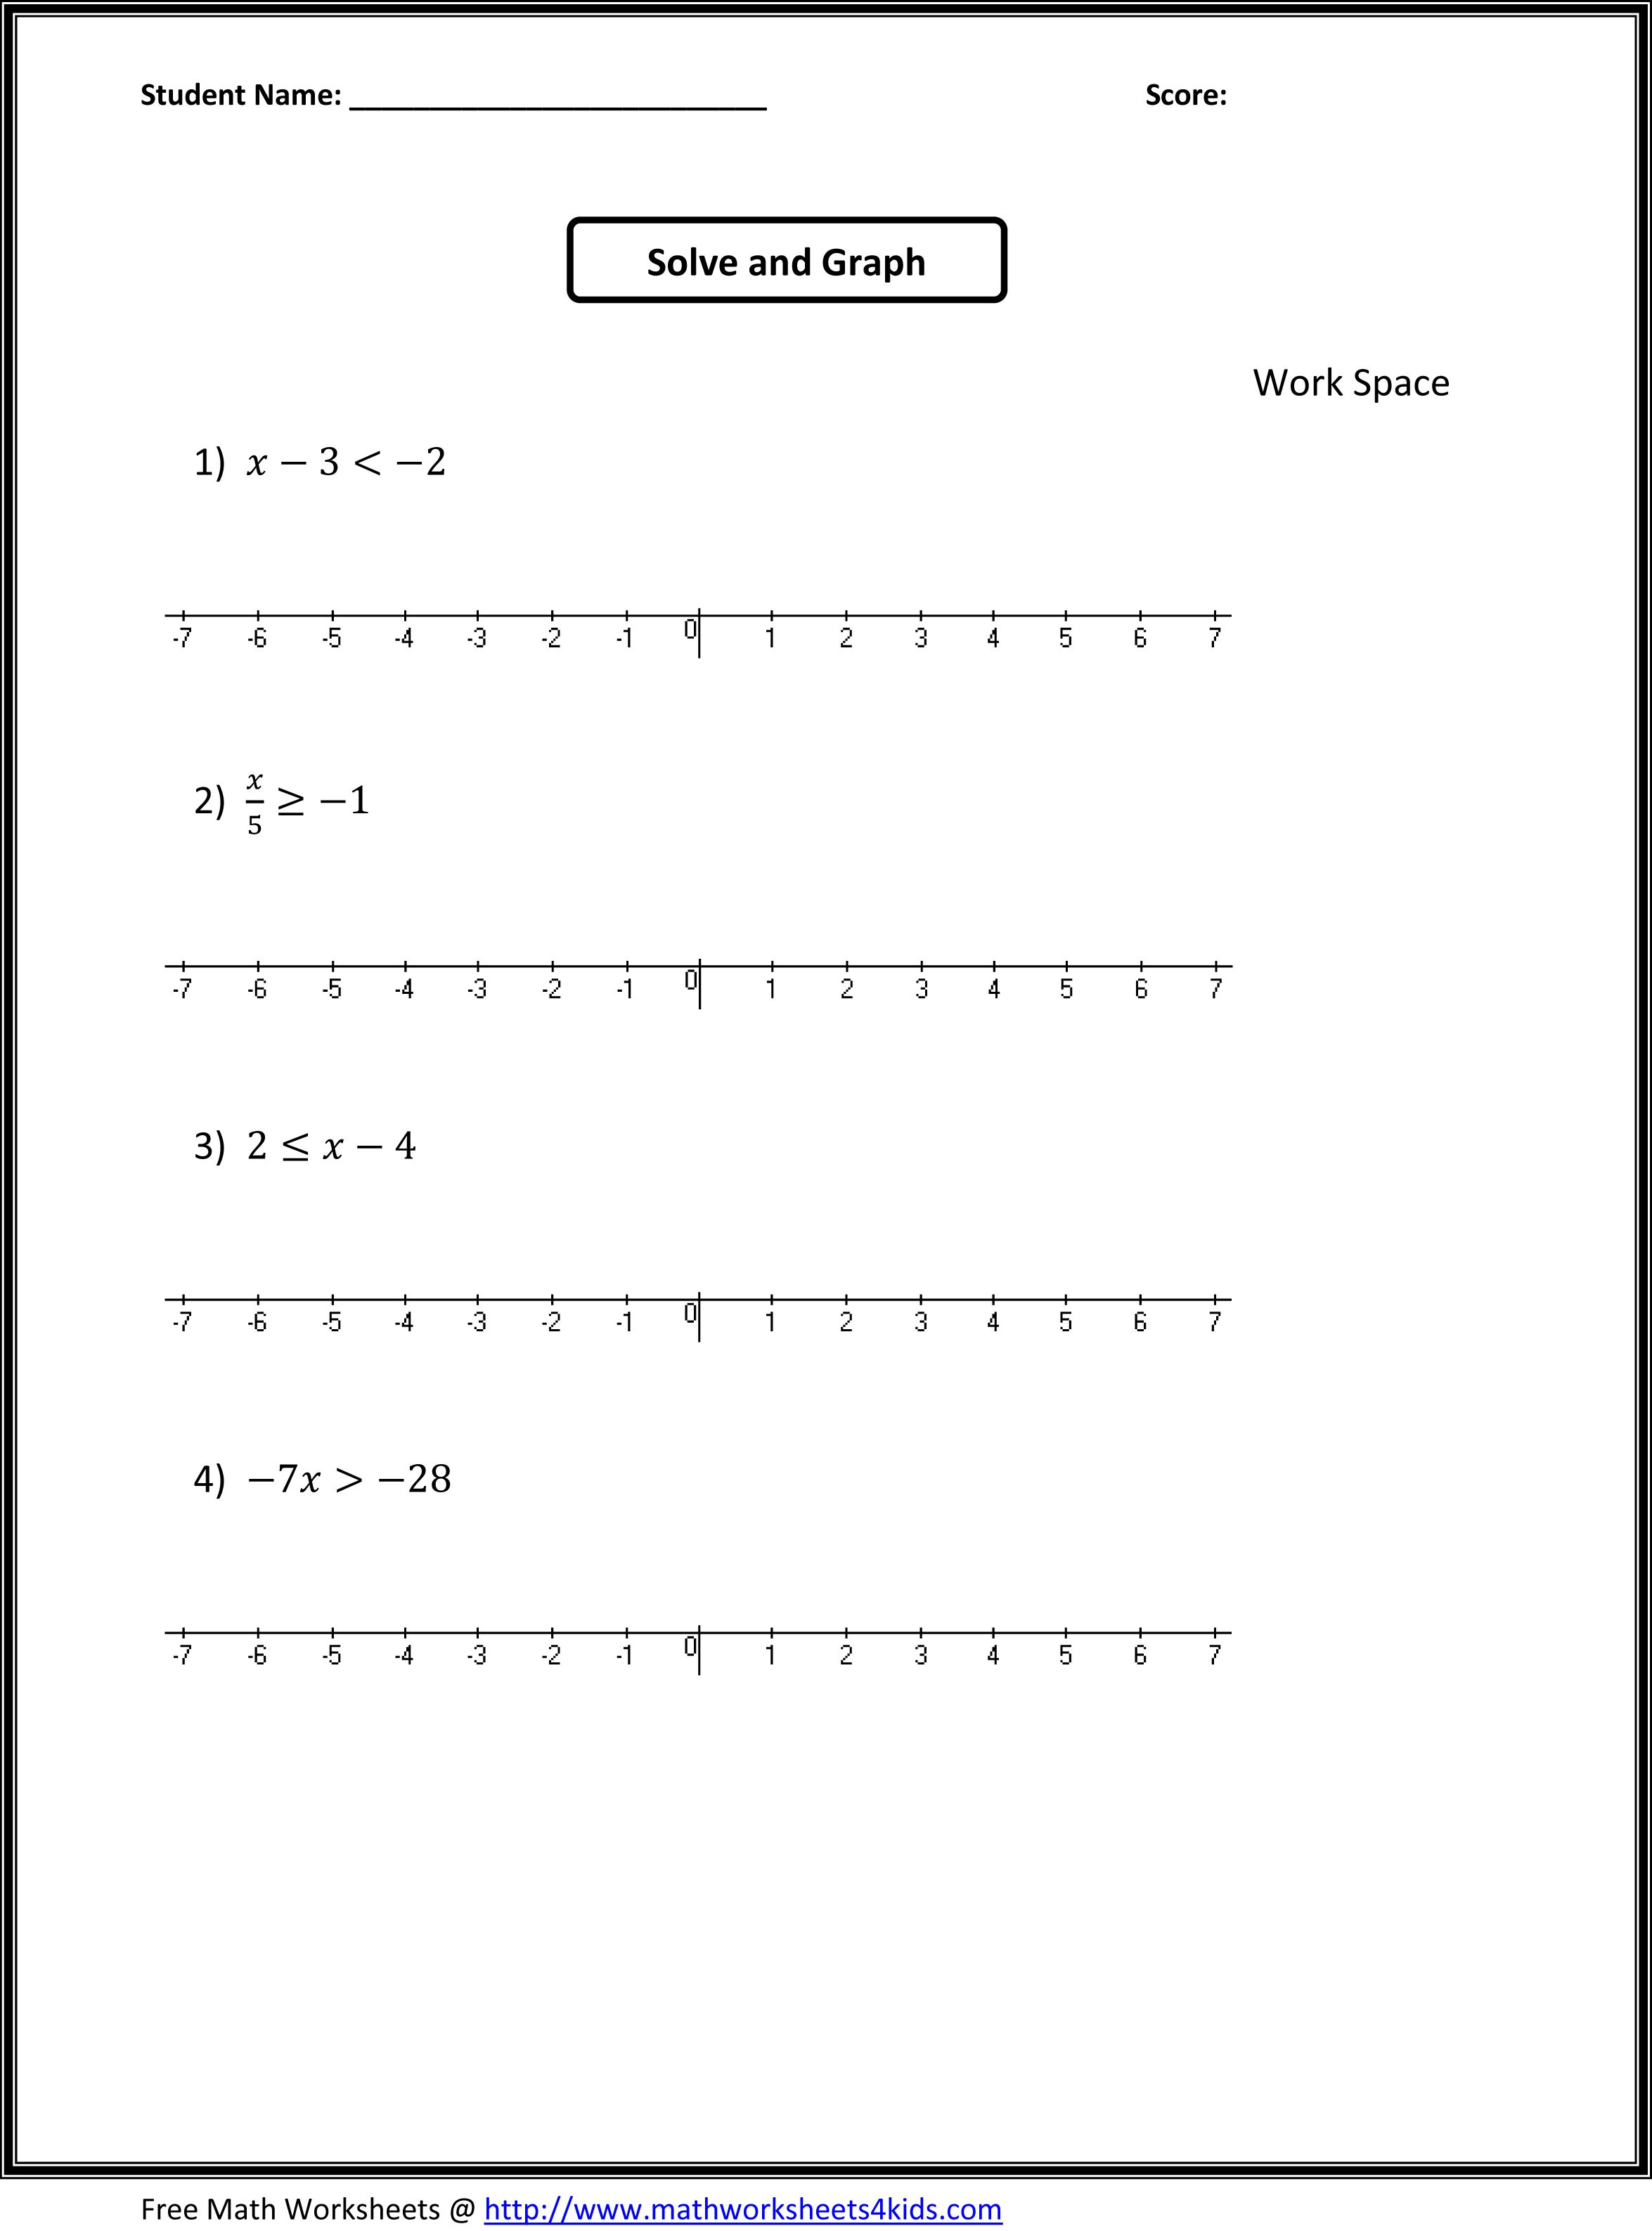 Uncategorized Basic Math Worksheets With Answers 7th grade math worksheets value absolute algebra worksheets